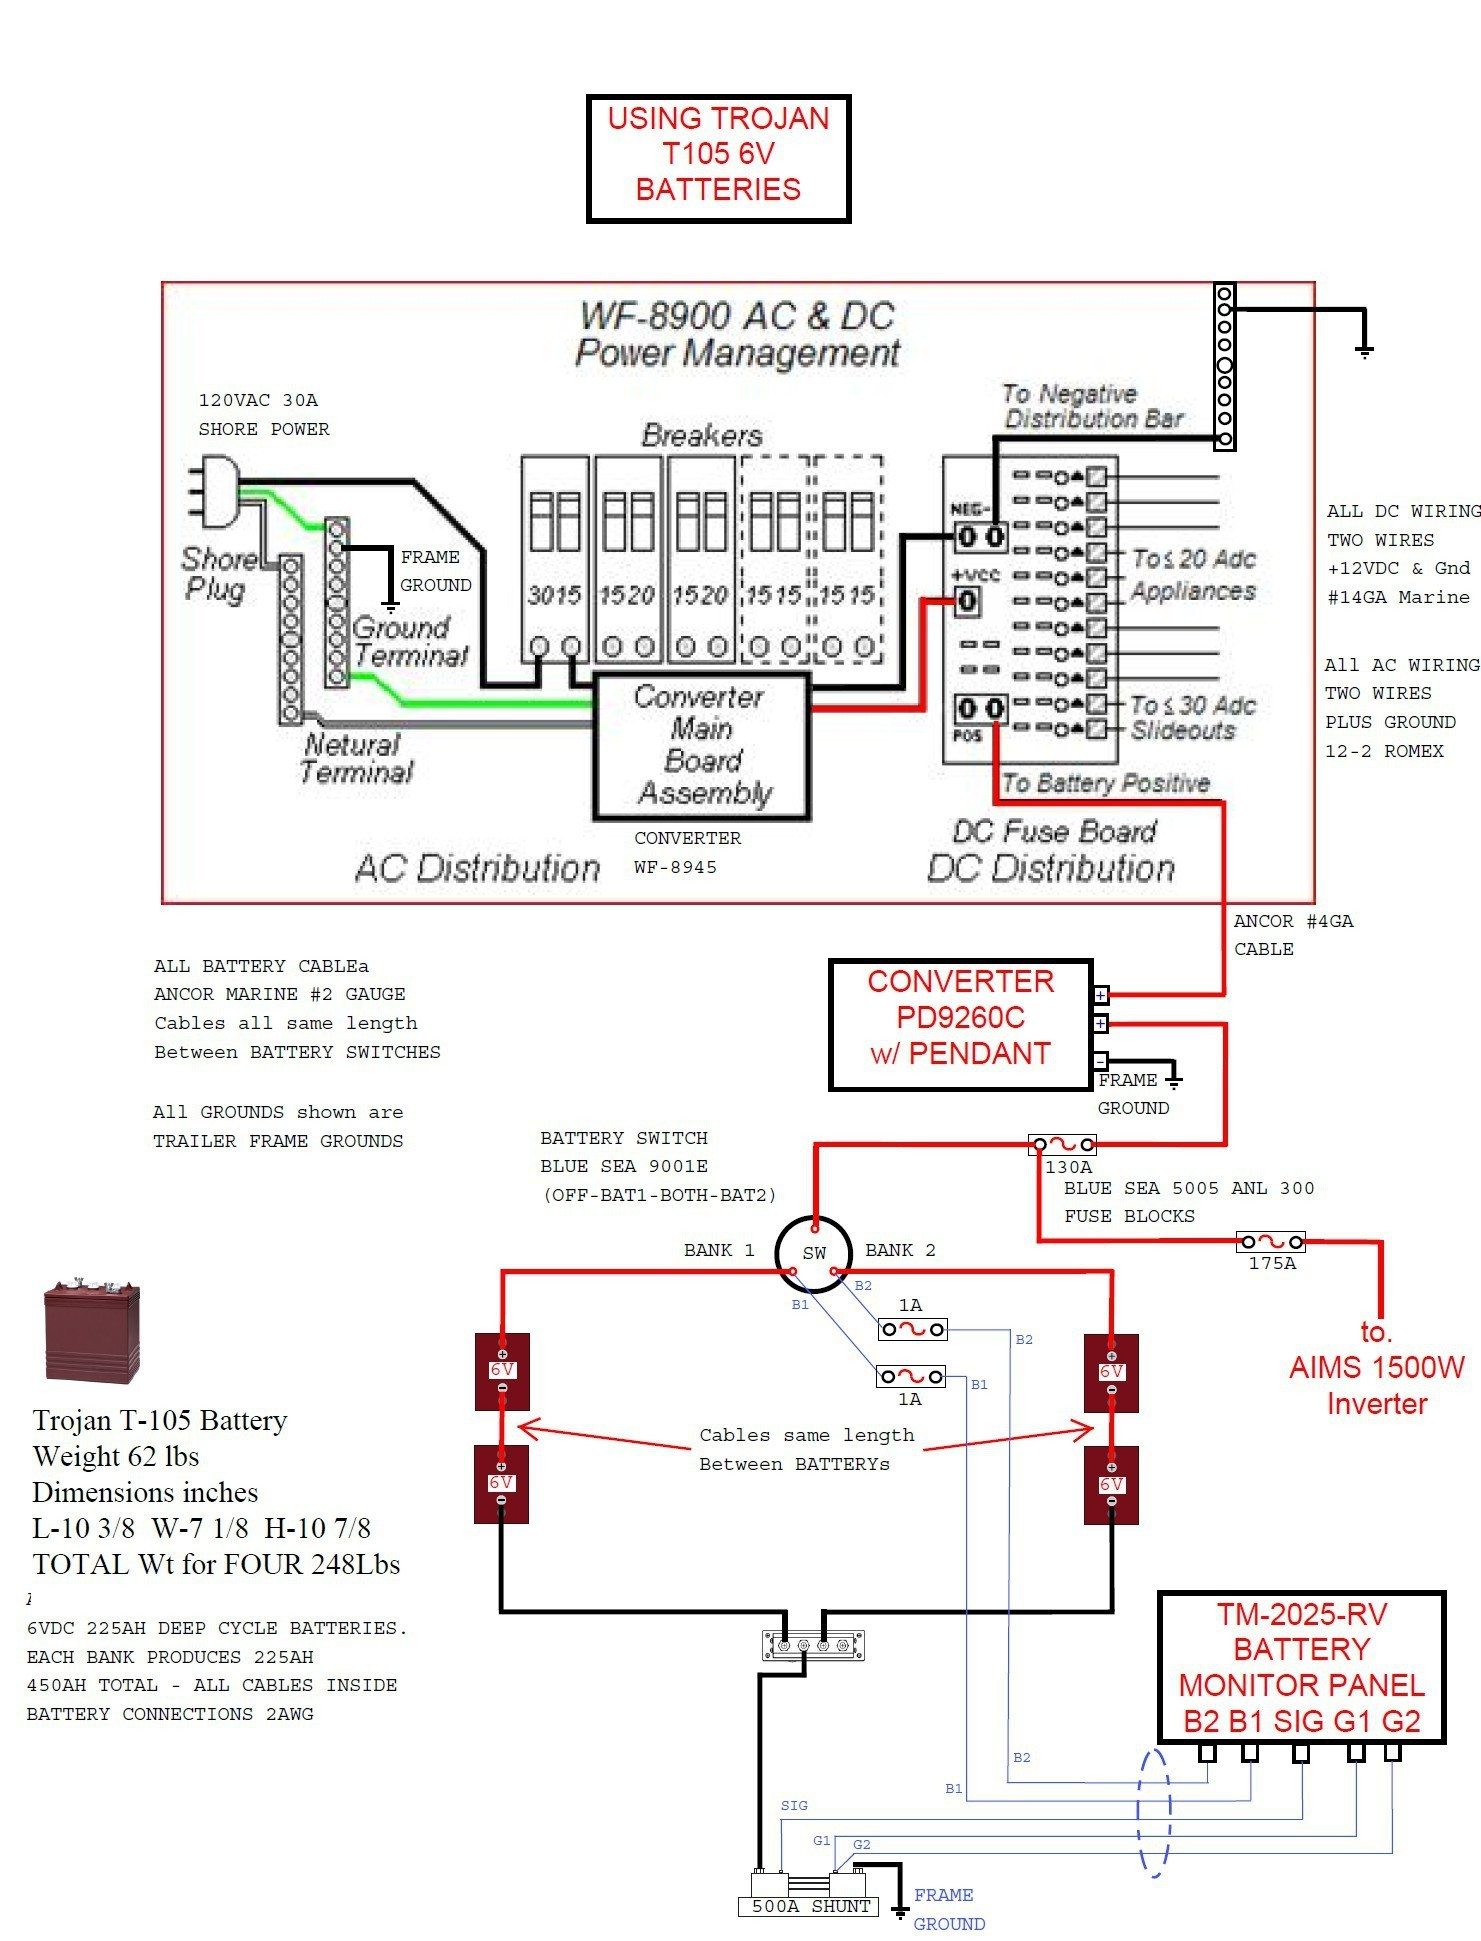 DIAGRAM] Rv Micro Monitor Panel Wiring Diagram FULL Version HD Quality Wiring  Diagram - DIAGRAMADLASEDUCATION.FROMAGESFERMIERS.FRDatabase Design Tool